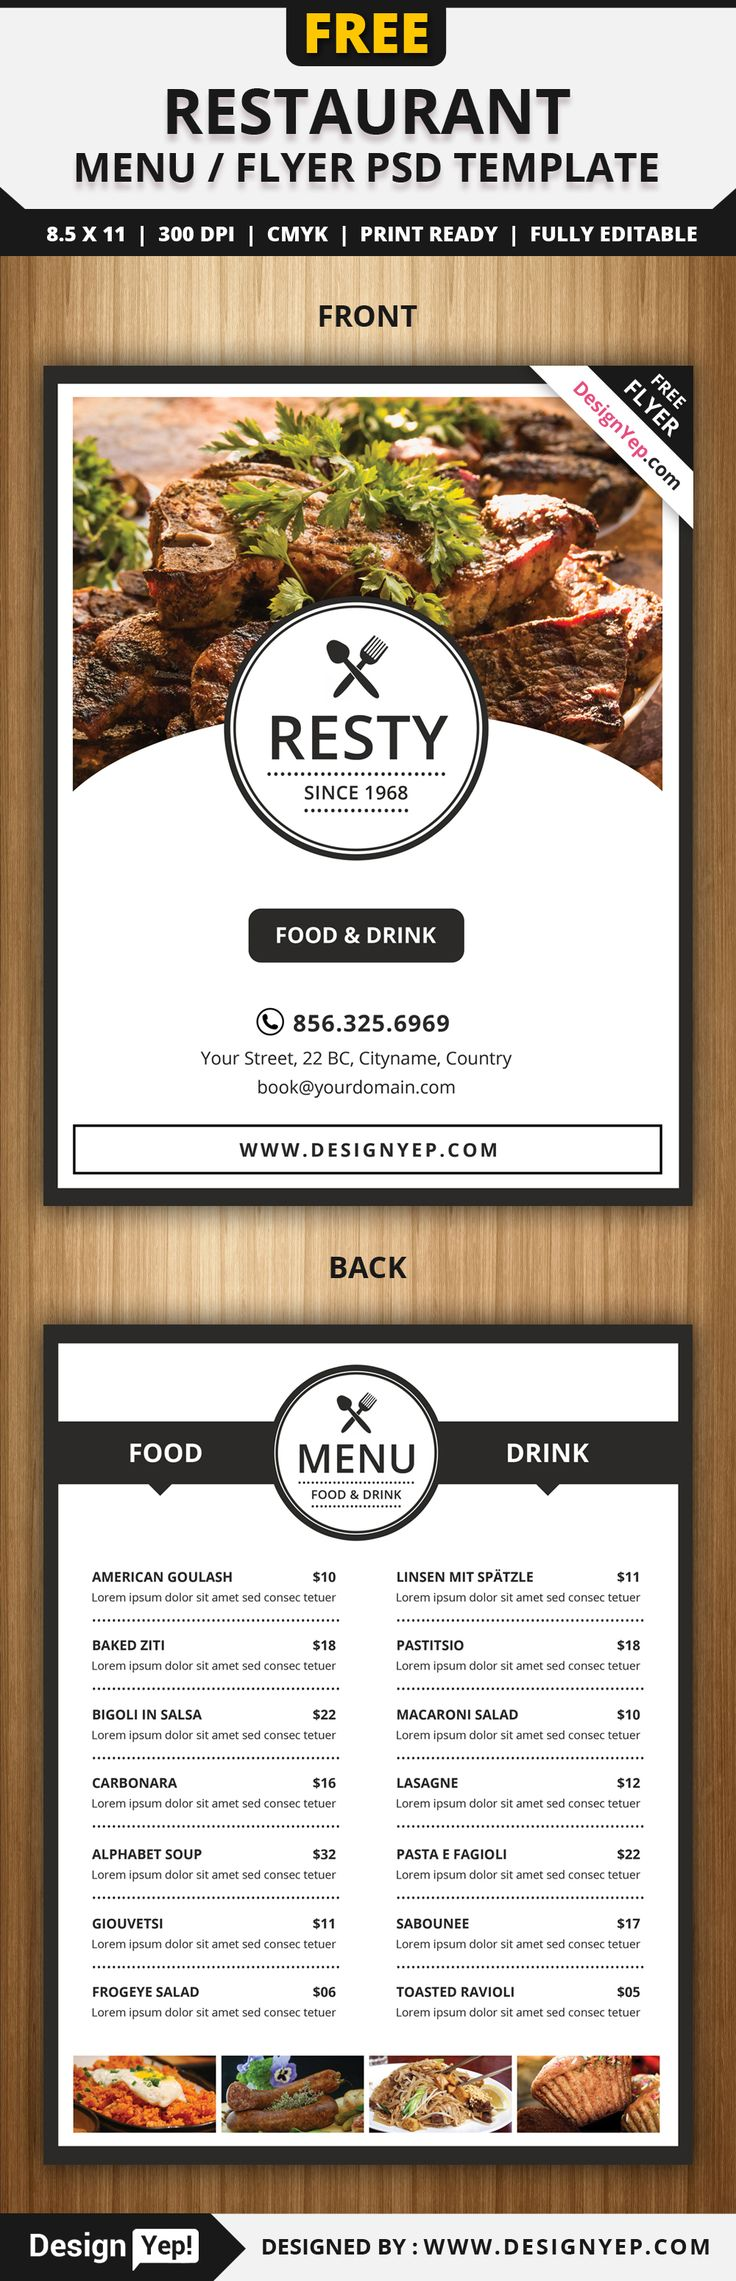 Free Restaurant Menu / Flyer PSD Template